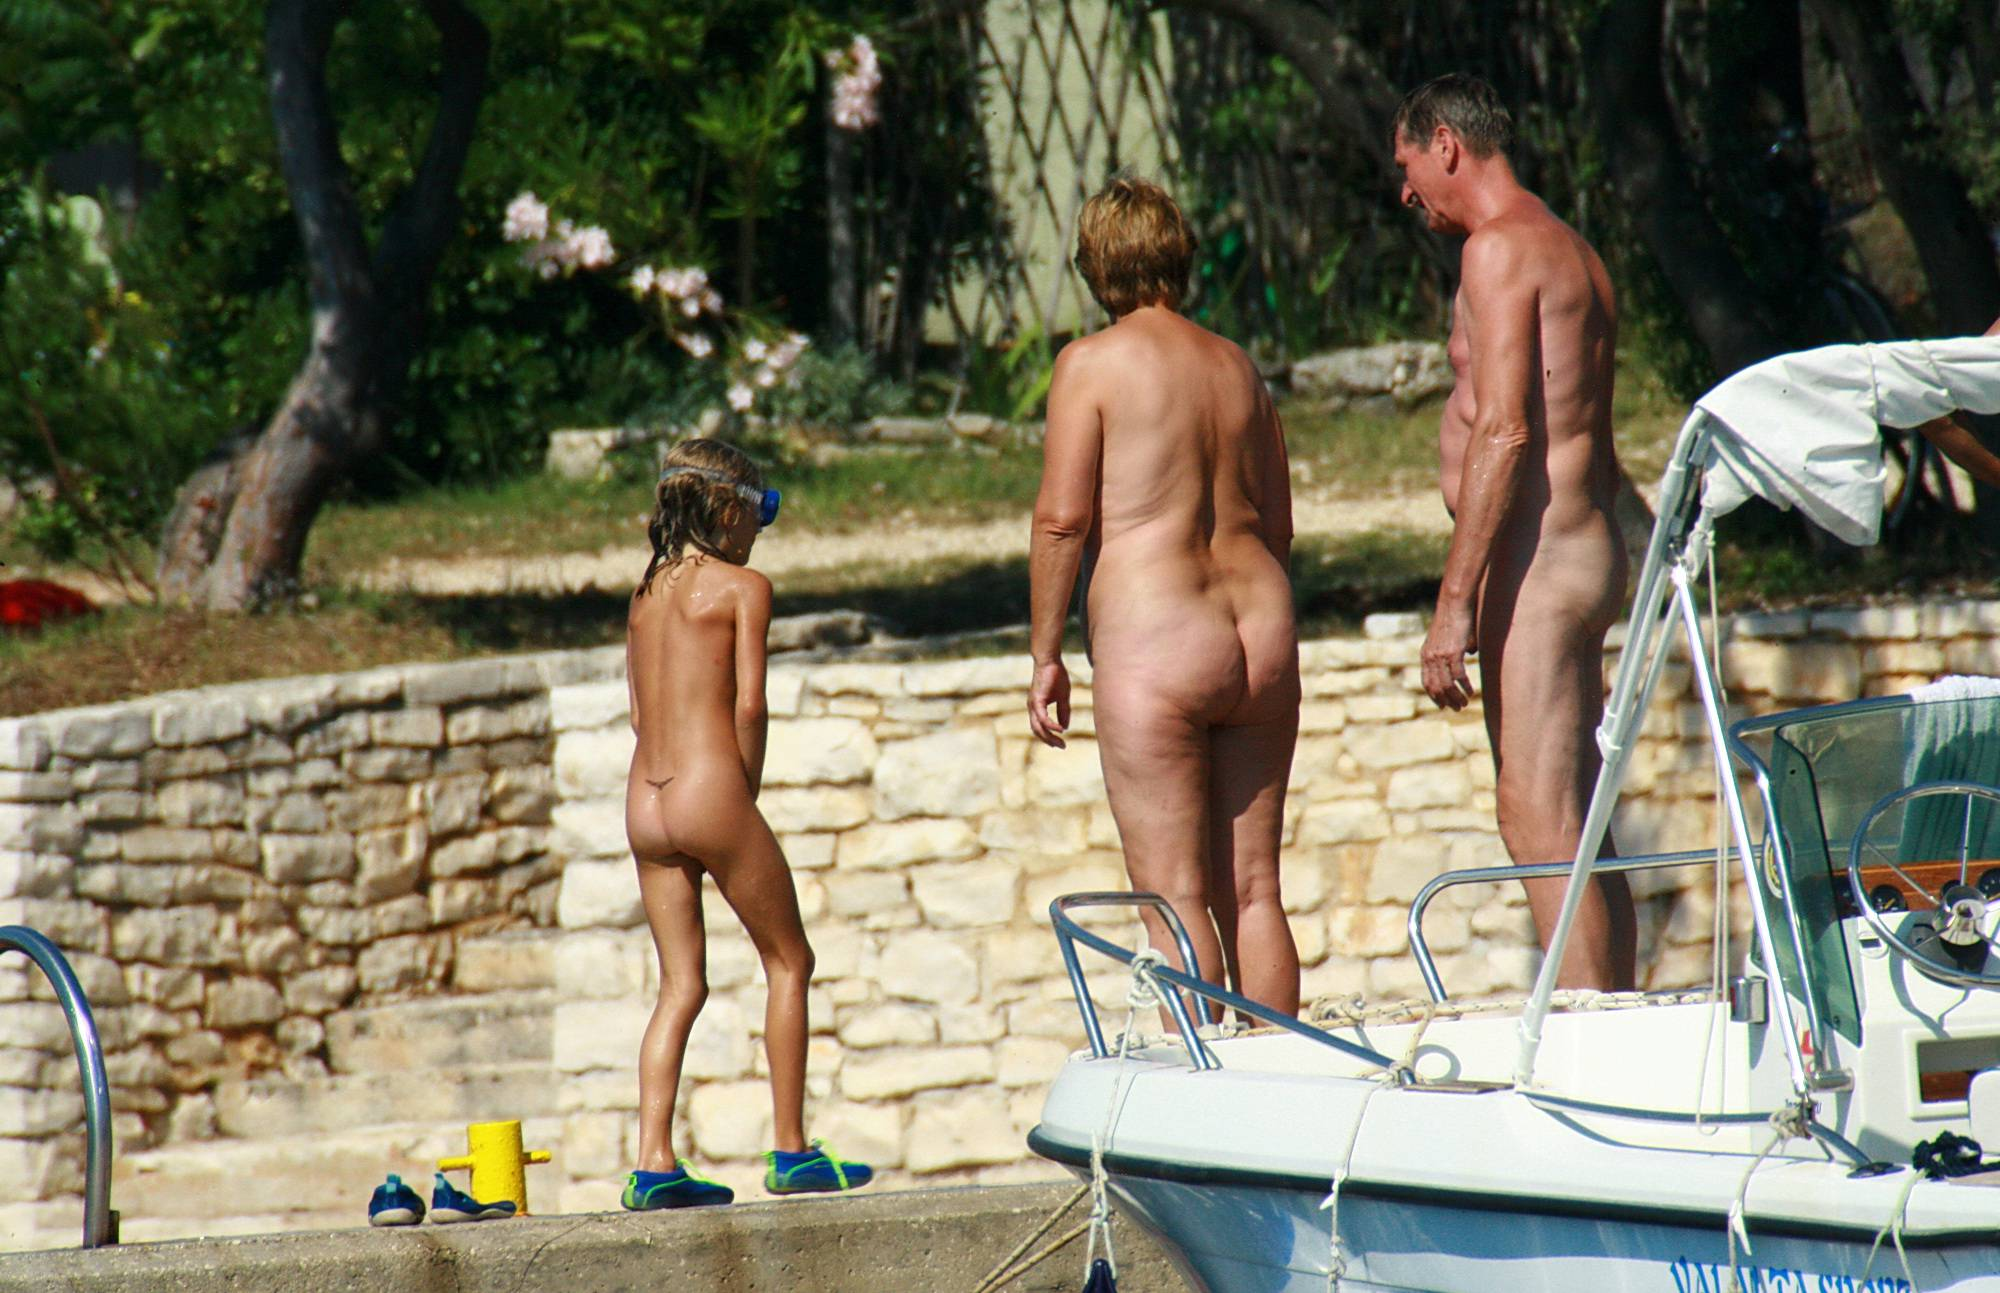 Pure Nudism Images-Living The Naturist Life - 2